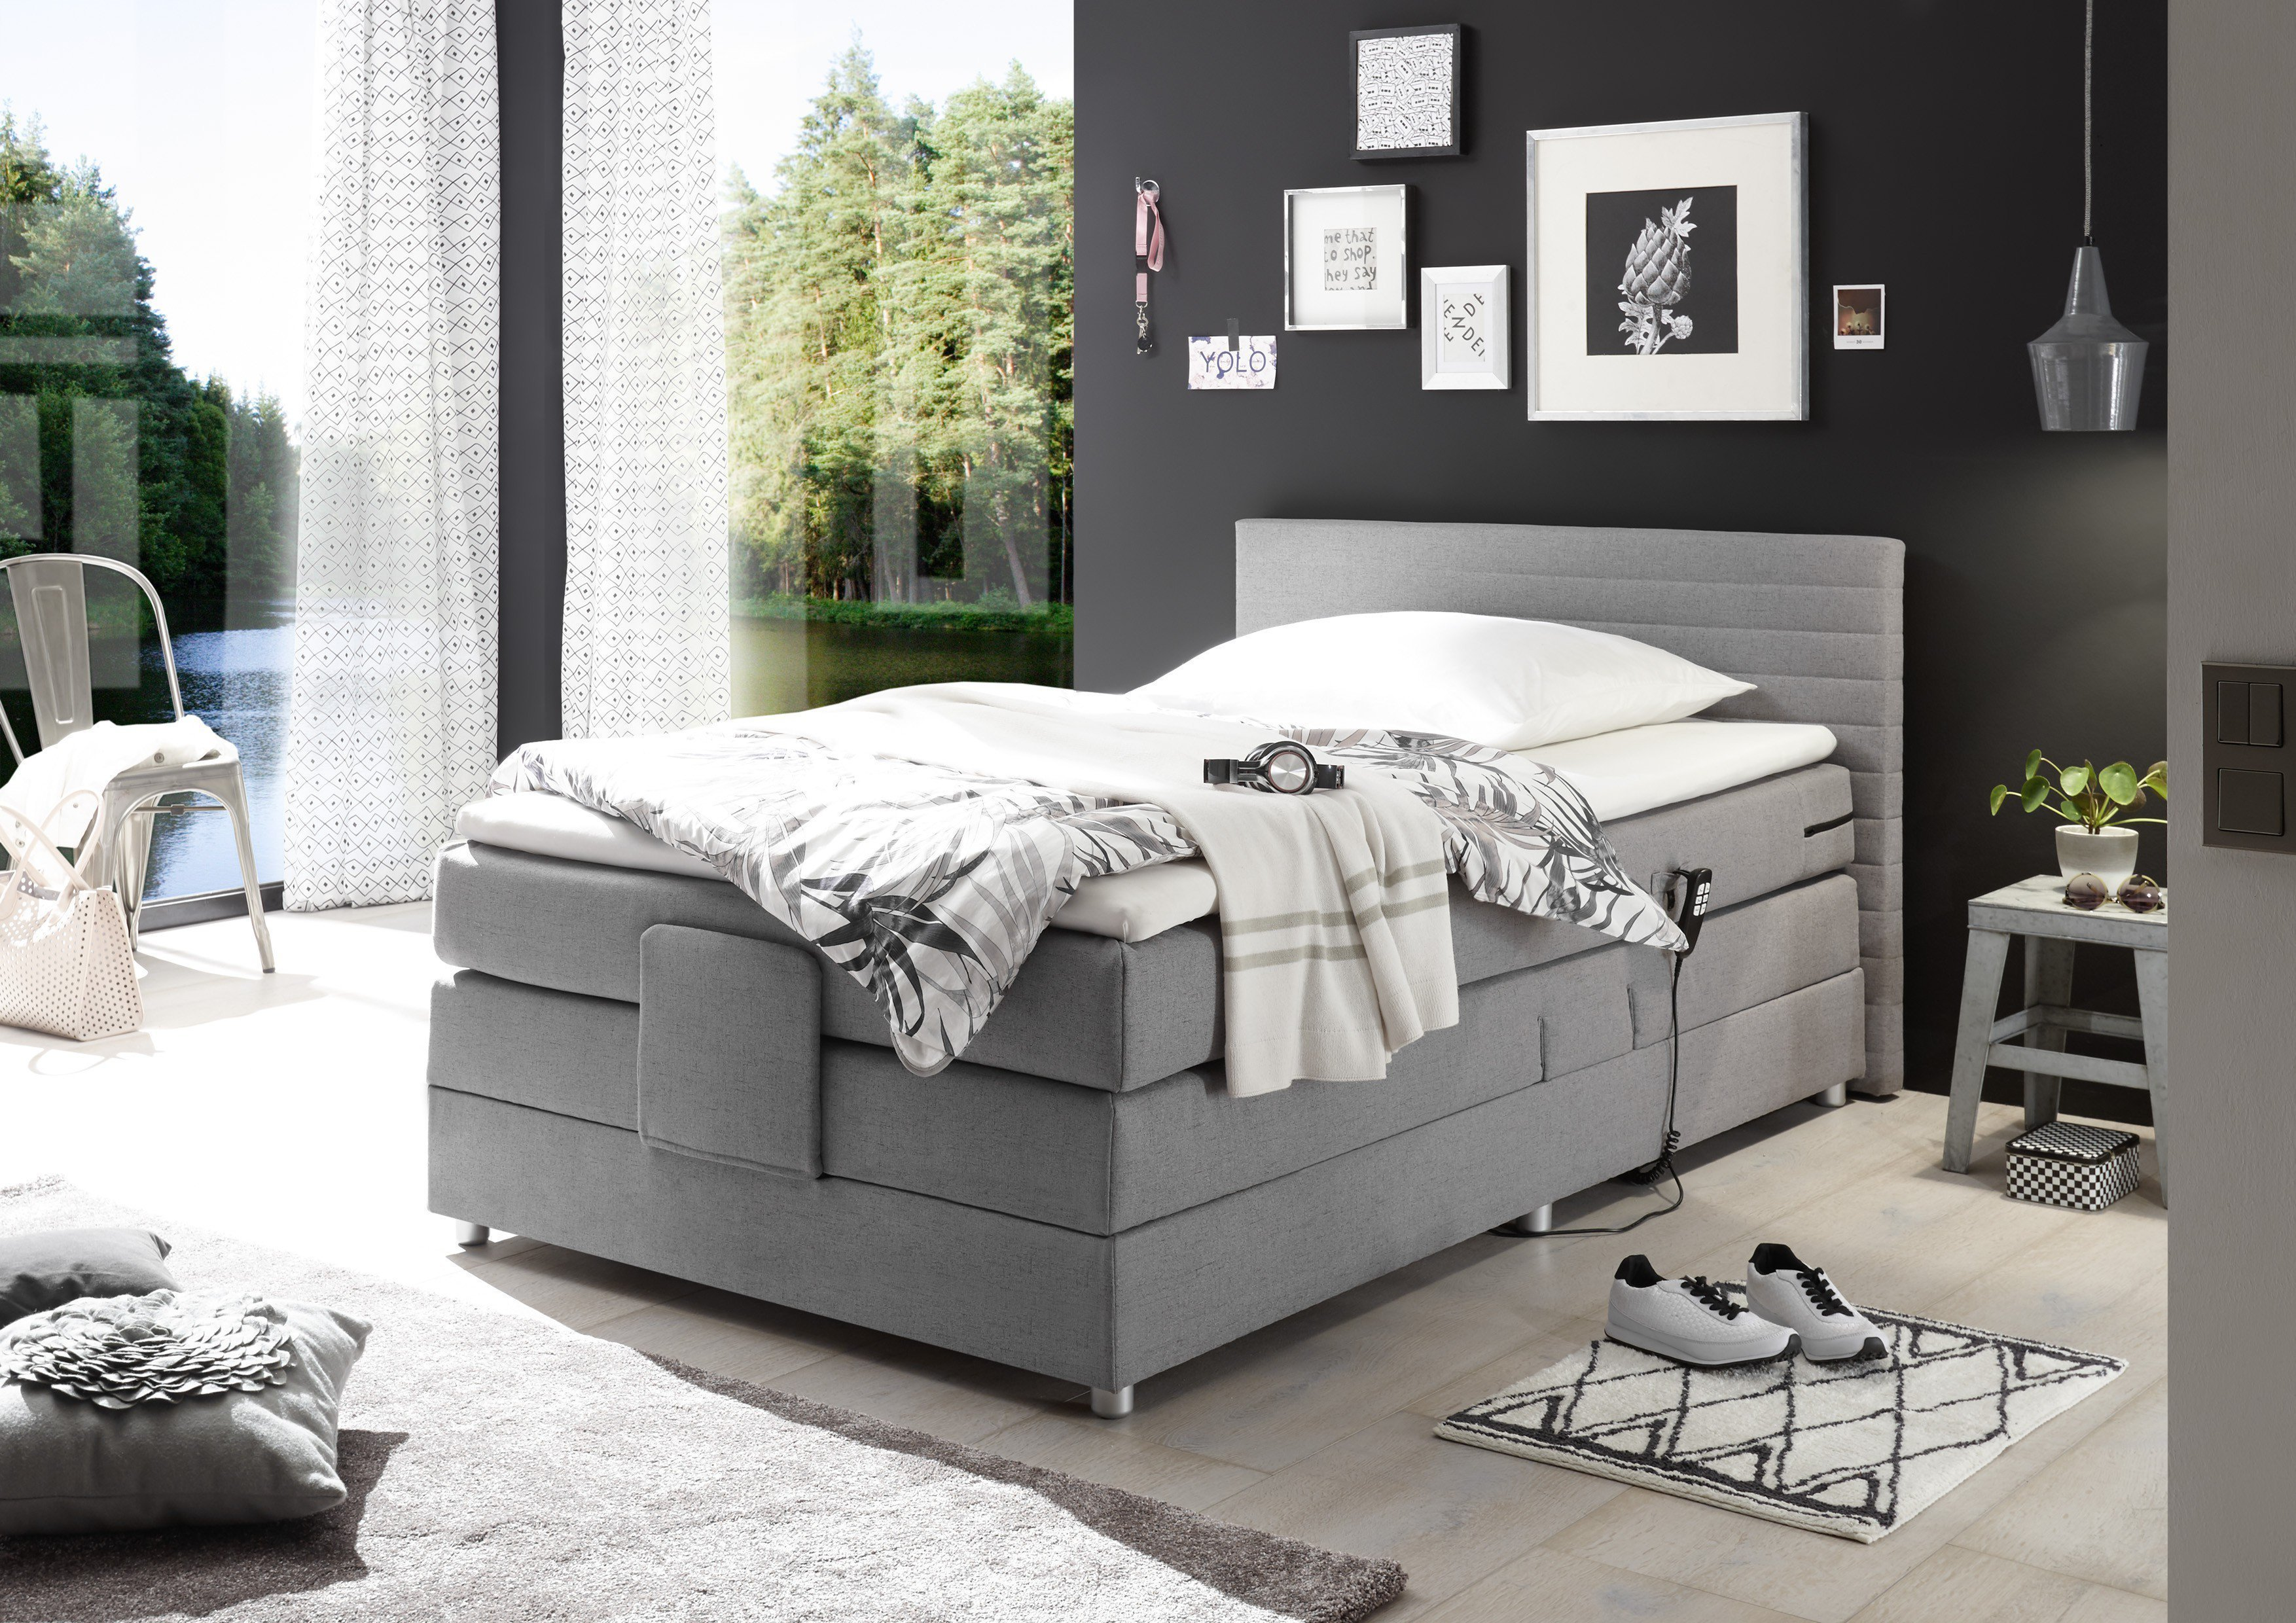 black red white boxspringbett carmen ca 100 x 200 cm m bel letz ihr online shop. Black Bedroom Furniture Sets. Home Design Ideas